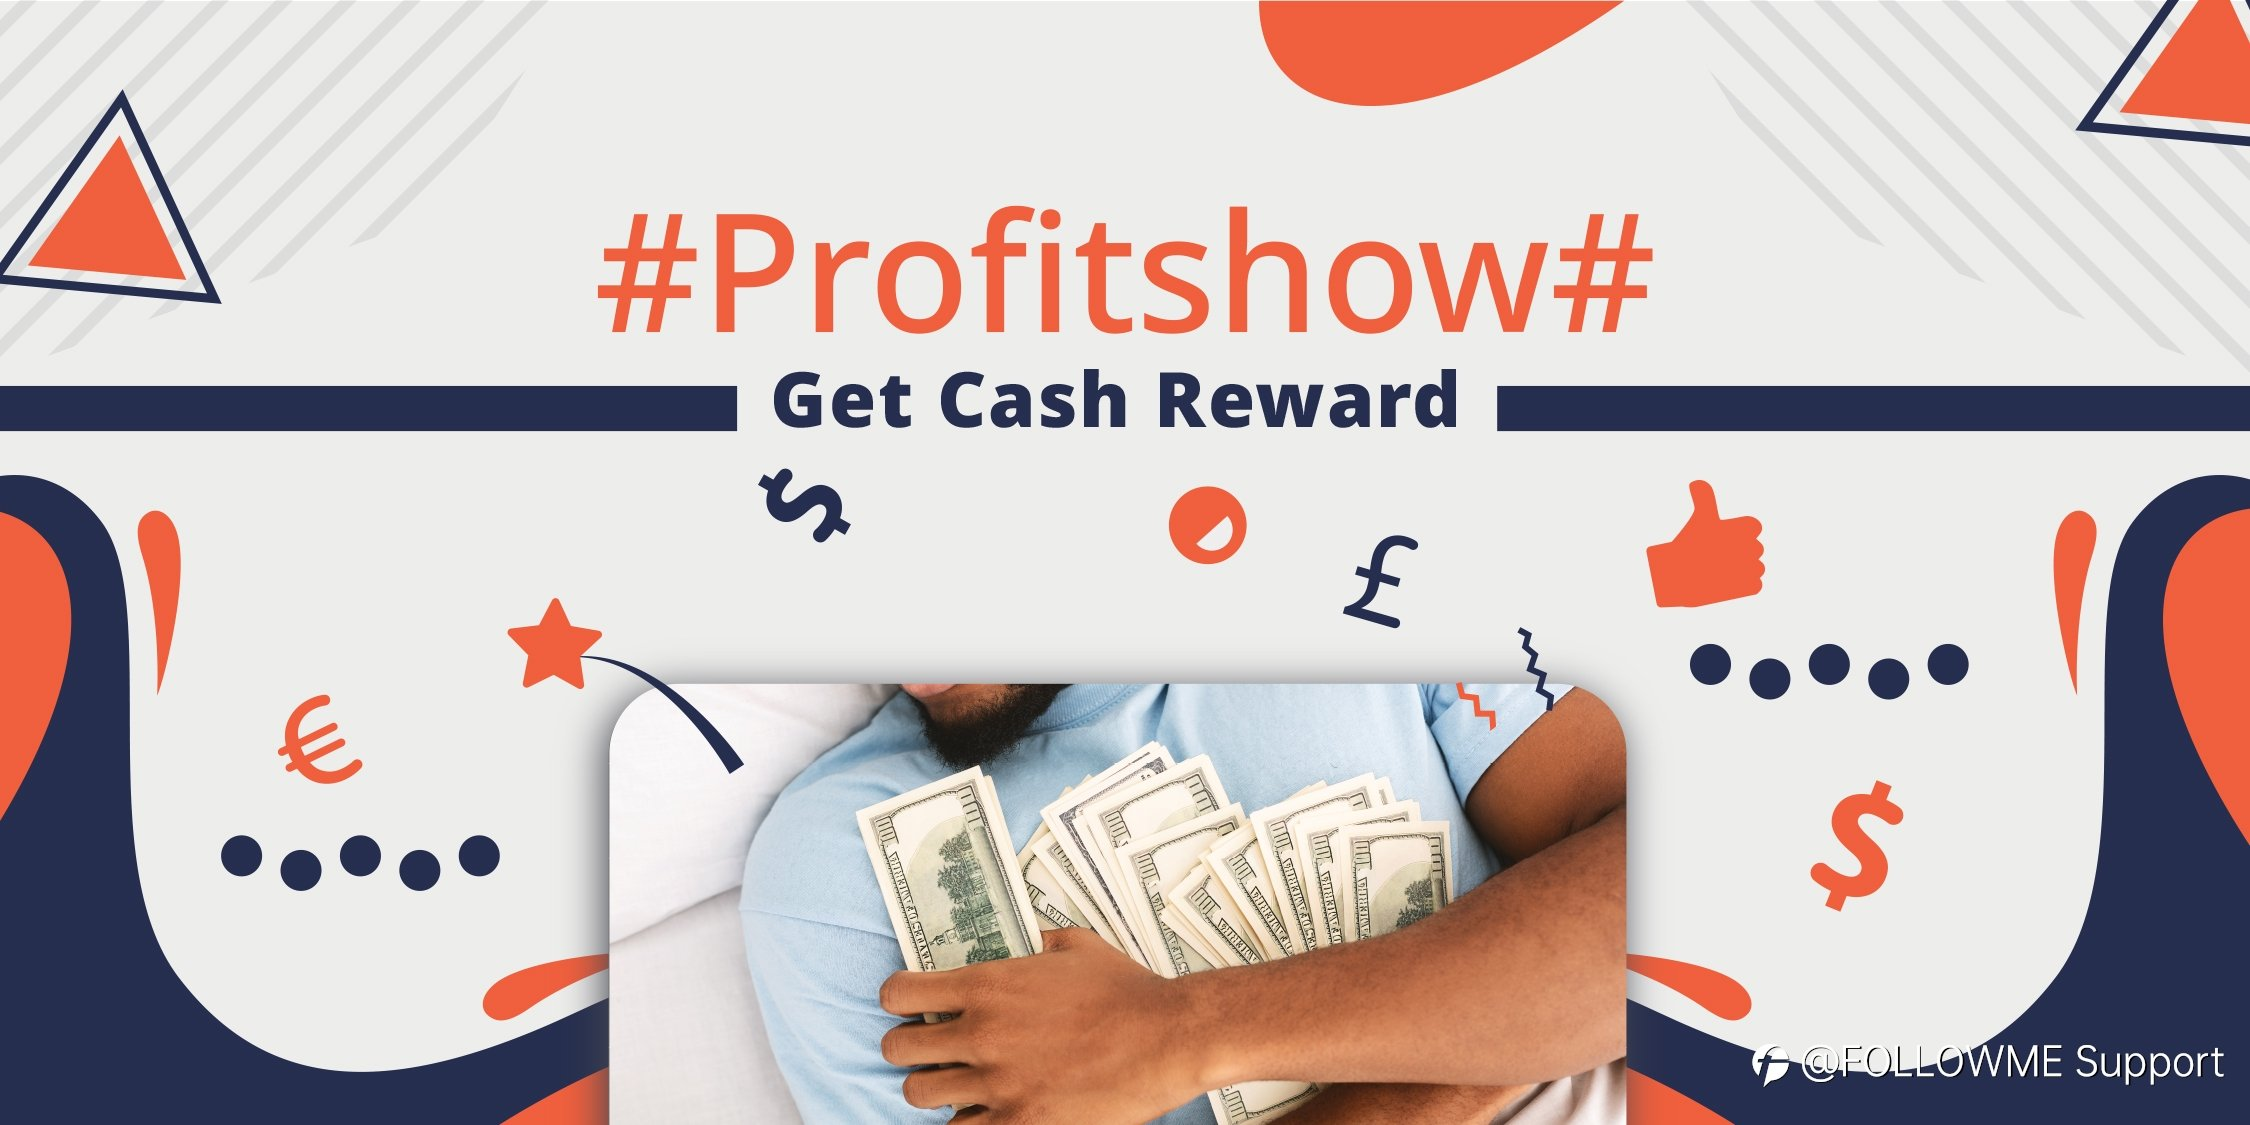 The right way to show your profit- #Profitshow# campaign notice